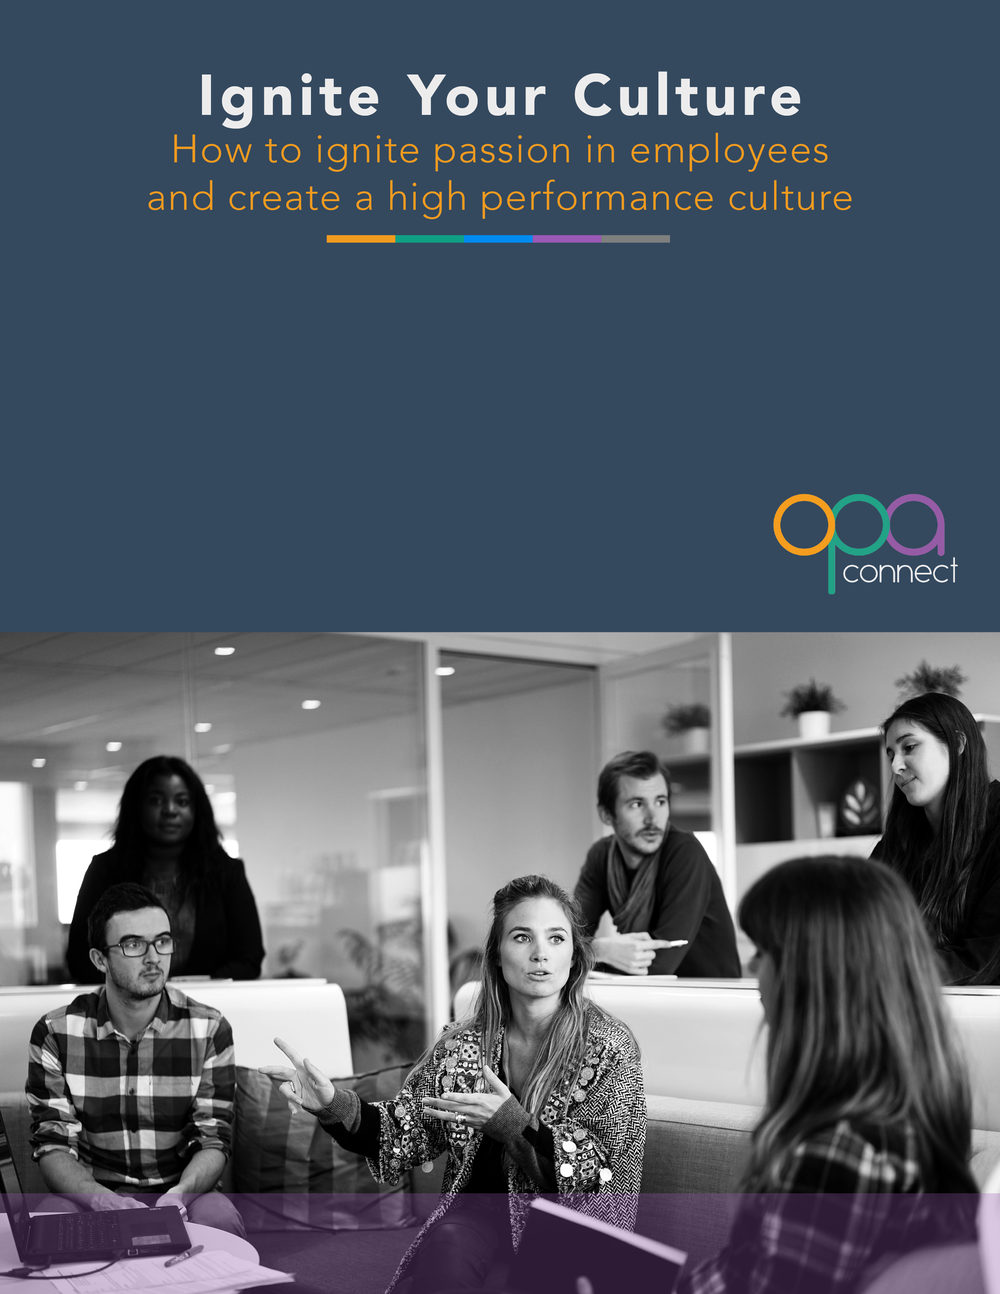 Creating a high performance employee culture